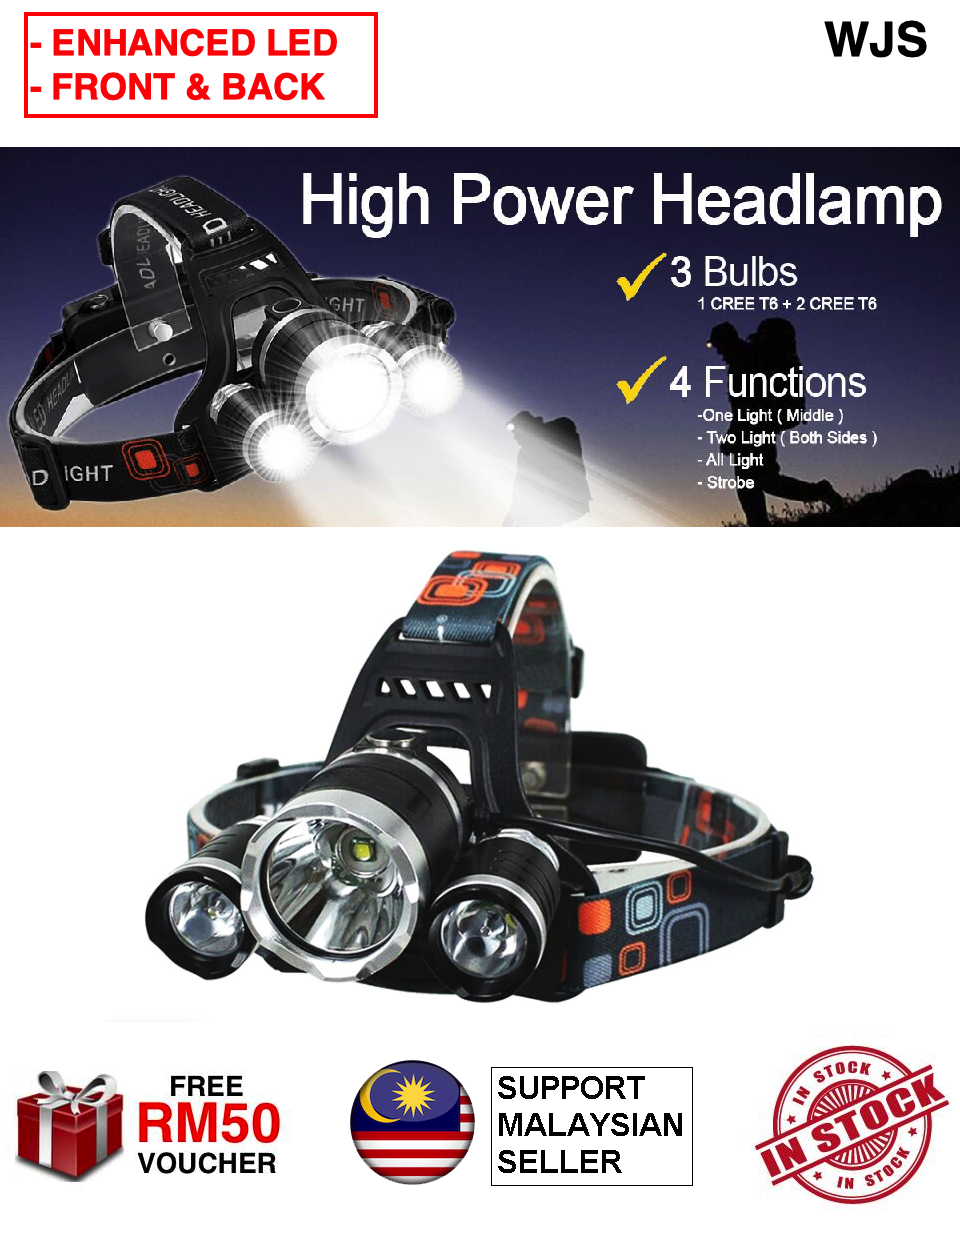 (FREE BATTERY & CHARGER) WJS 3 Enhanced LED Extra Brightest Front Back Head Lamp Head LED Work Headlight 18650 Rechargeable Waterproof Torch Light Flashlight 4 Modes Headlamp Lampu Suluh Kepala [FREE RM 50 VOUCHER]